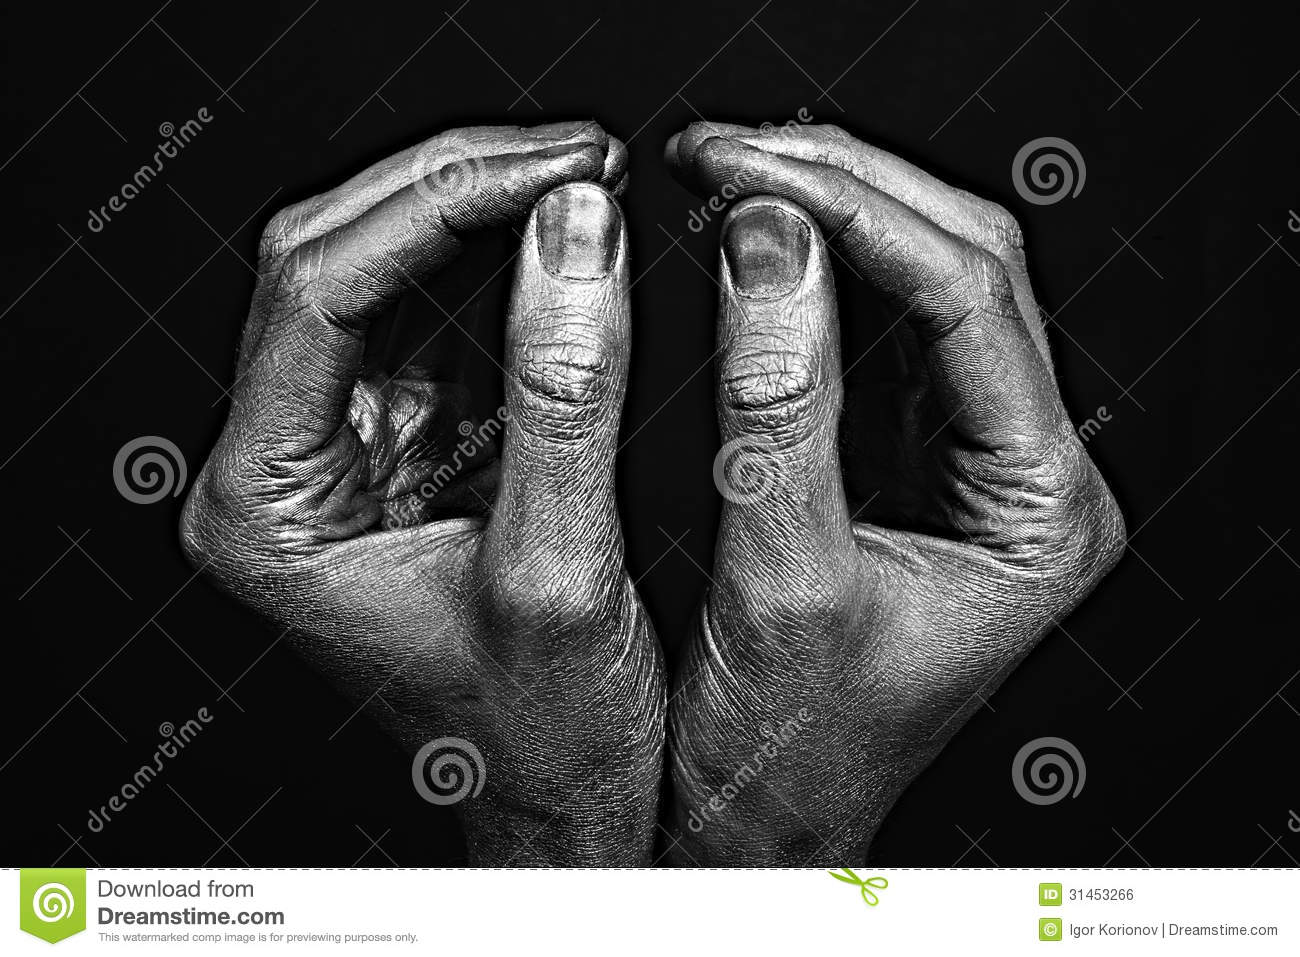 Manatarci Cel Mai Simplu Mod De Preparare in addition Stock Photo 3d Rich Man together with Vitiligo Black To White likewise Royalty Free Stock Image Strong Male Hands Silver Paint Black Background Image31453266 besides 531650a4c07a800fb300006c Graft Penda To Break Ground On Myrtle Garden Hotel Photo. on 37